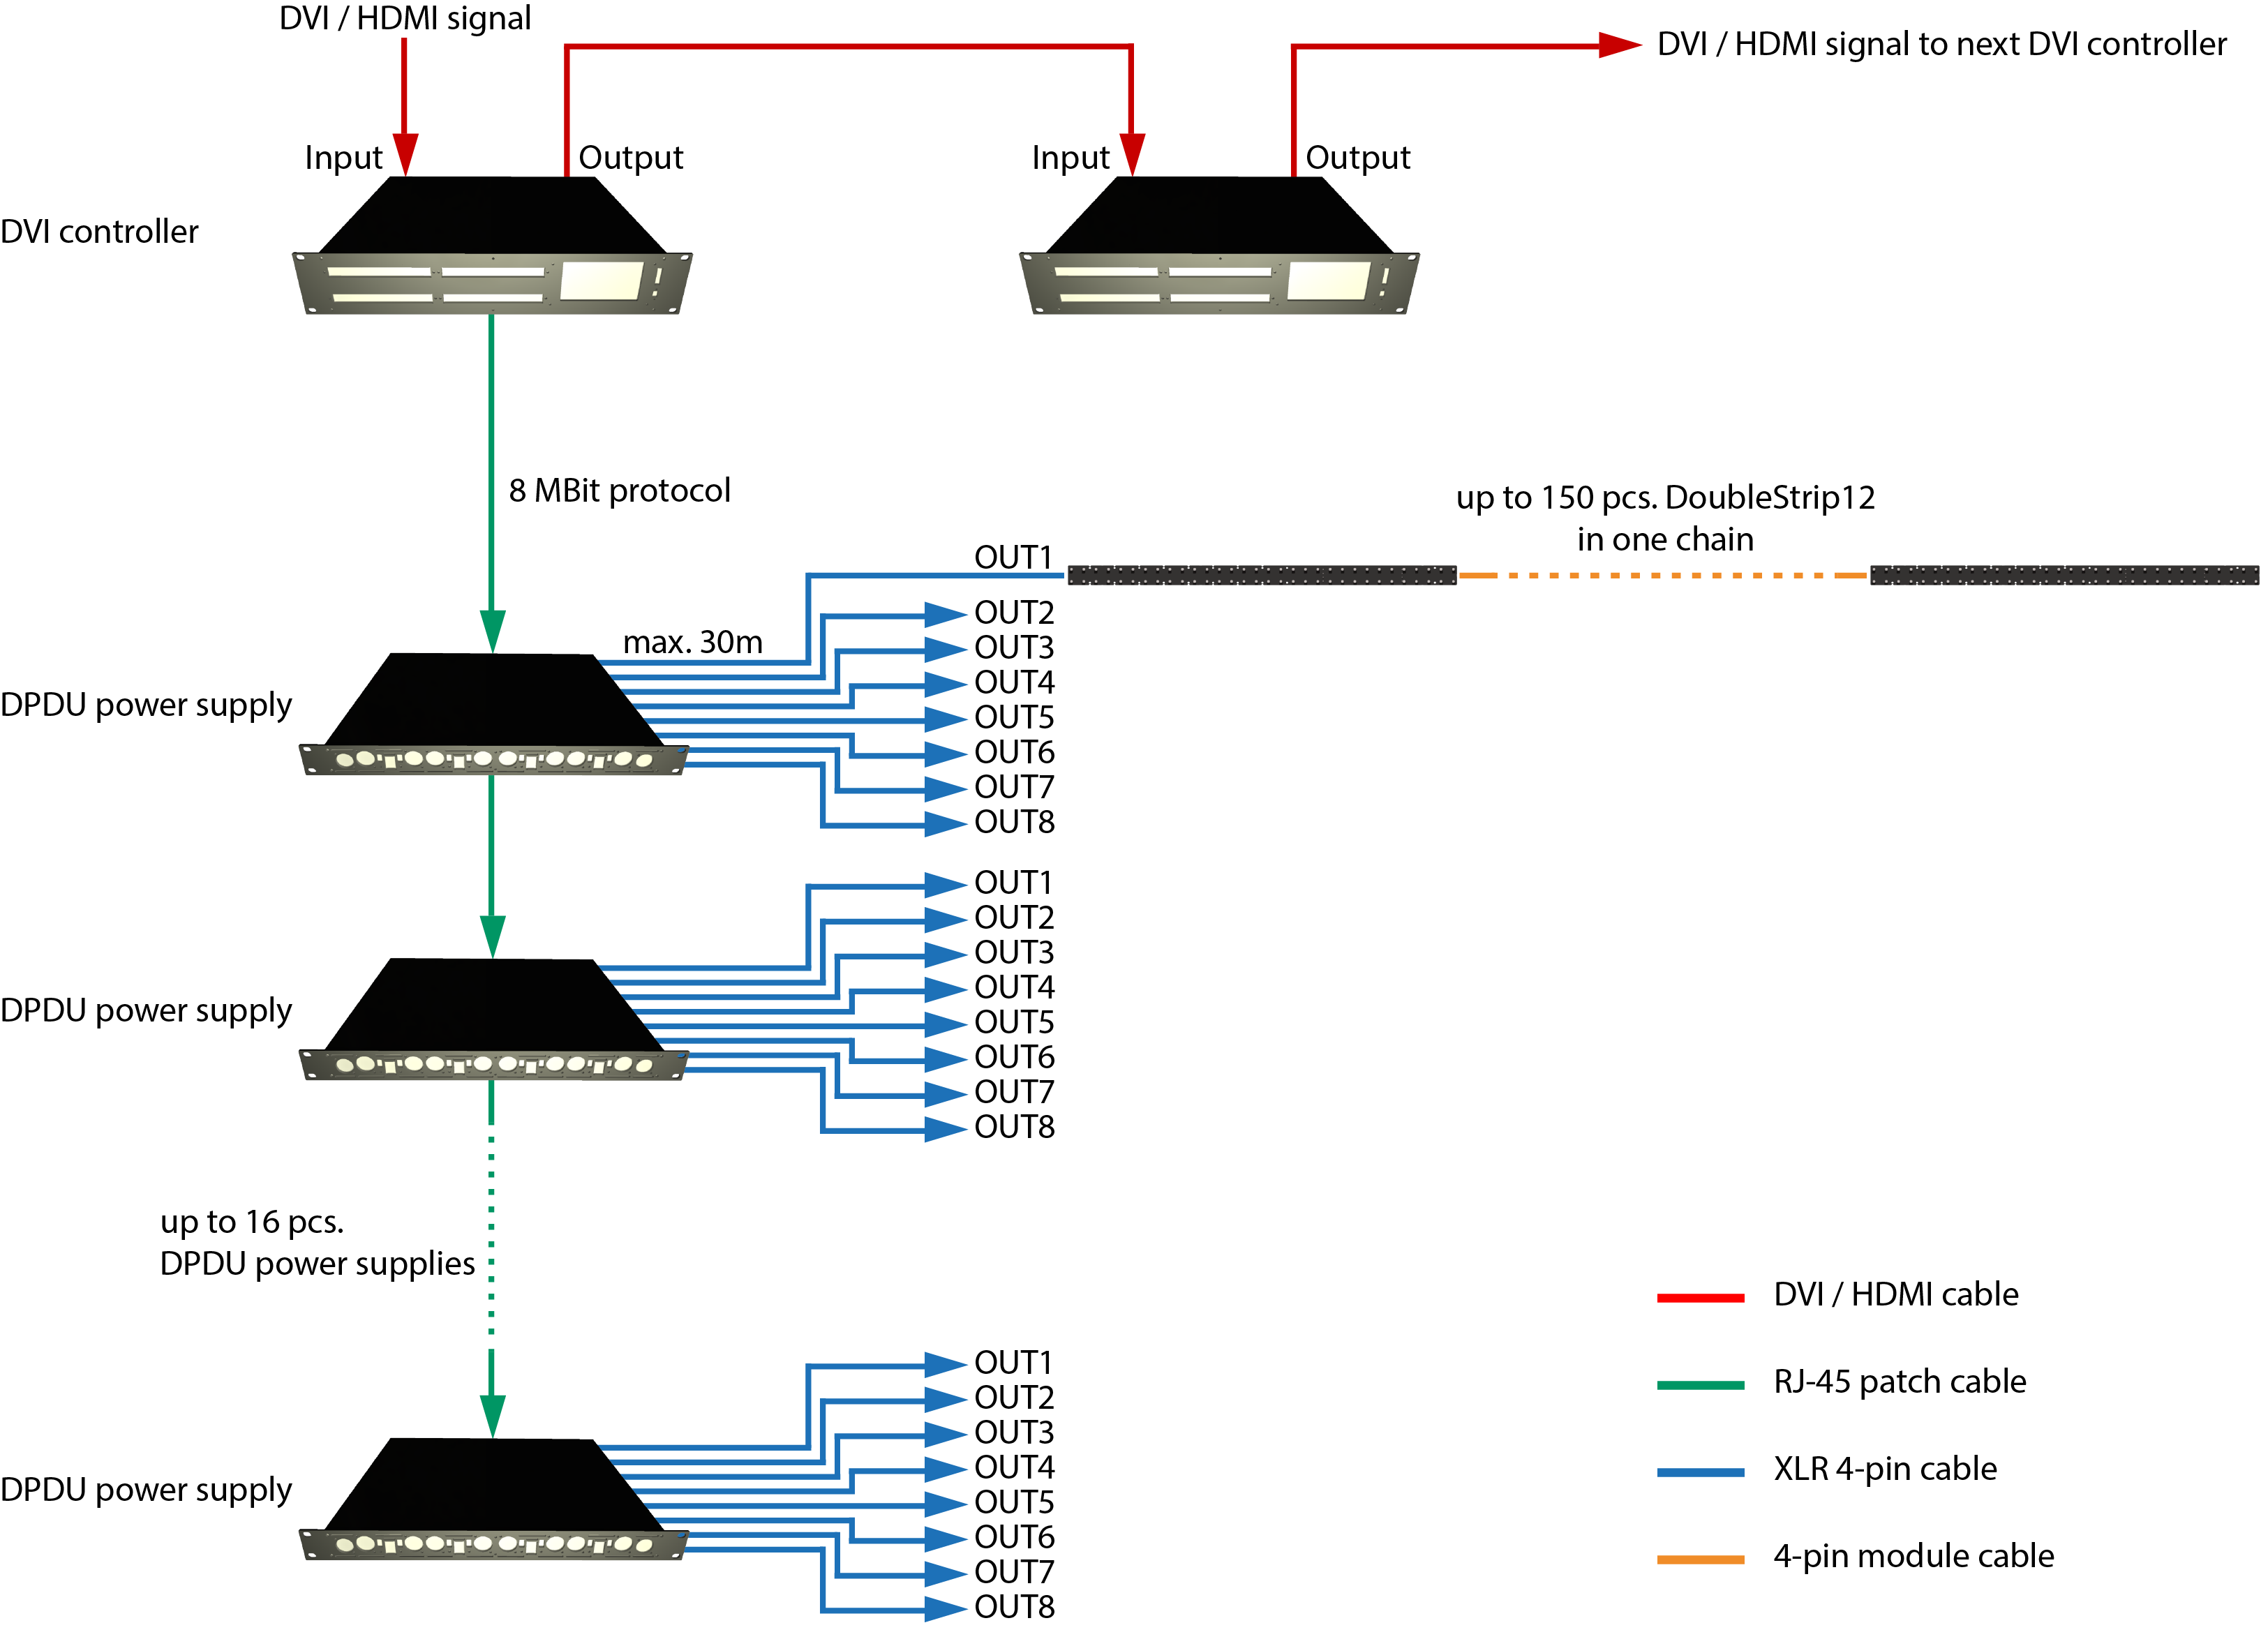 System diagram of a typical DoubleStrip12™ LED video installation